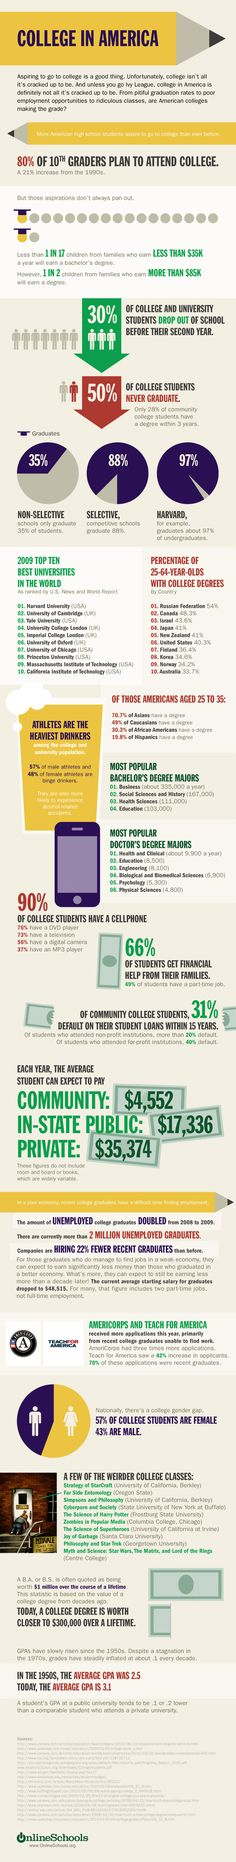 Some amazing data on education in the US - what can we do to creatively disrupt it?